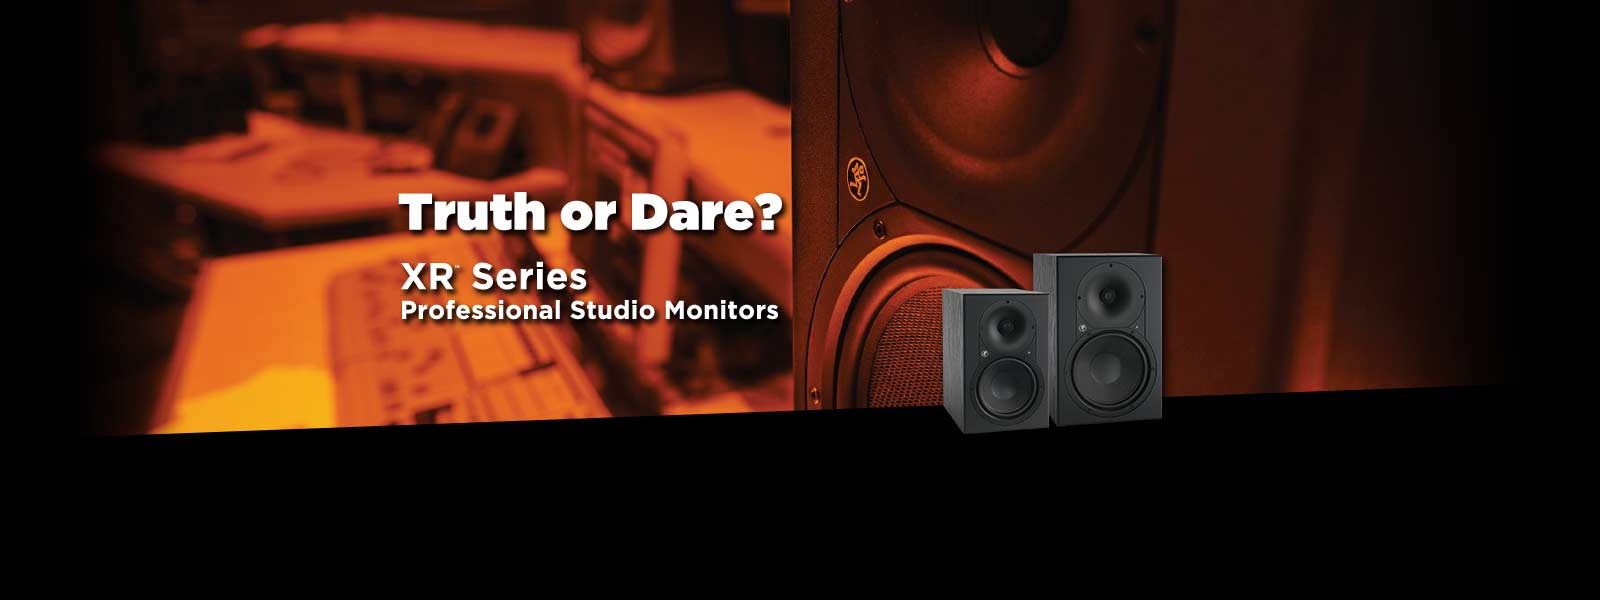 XR series professional studio monitors